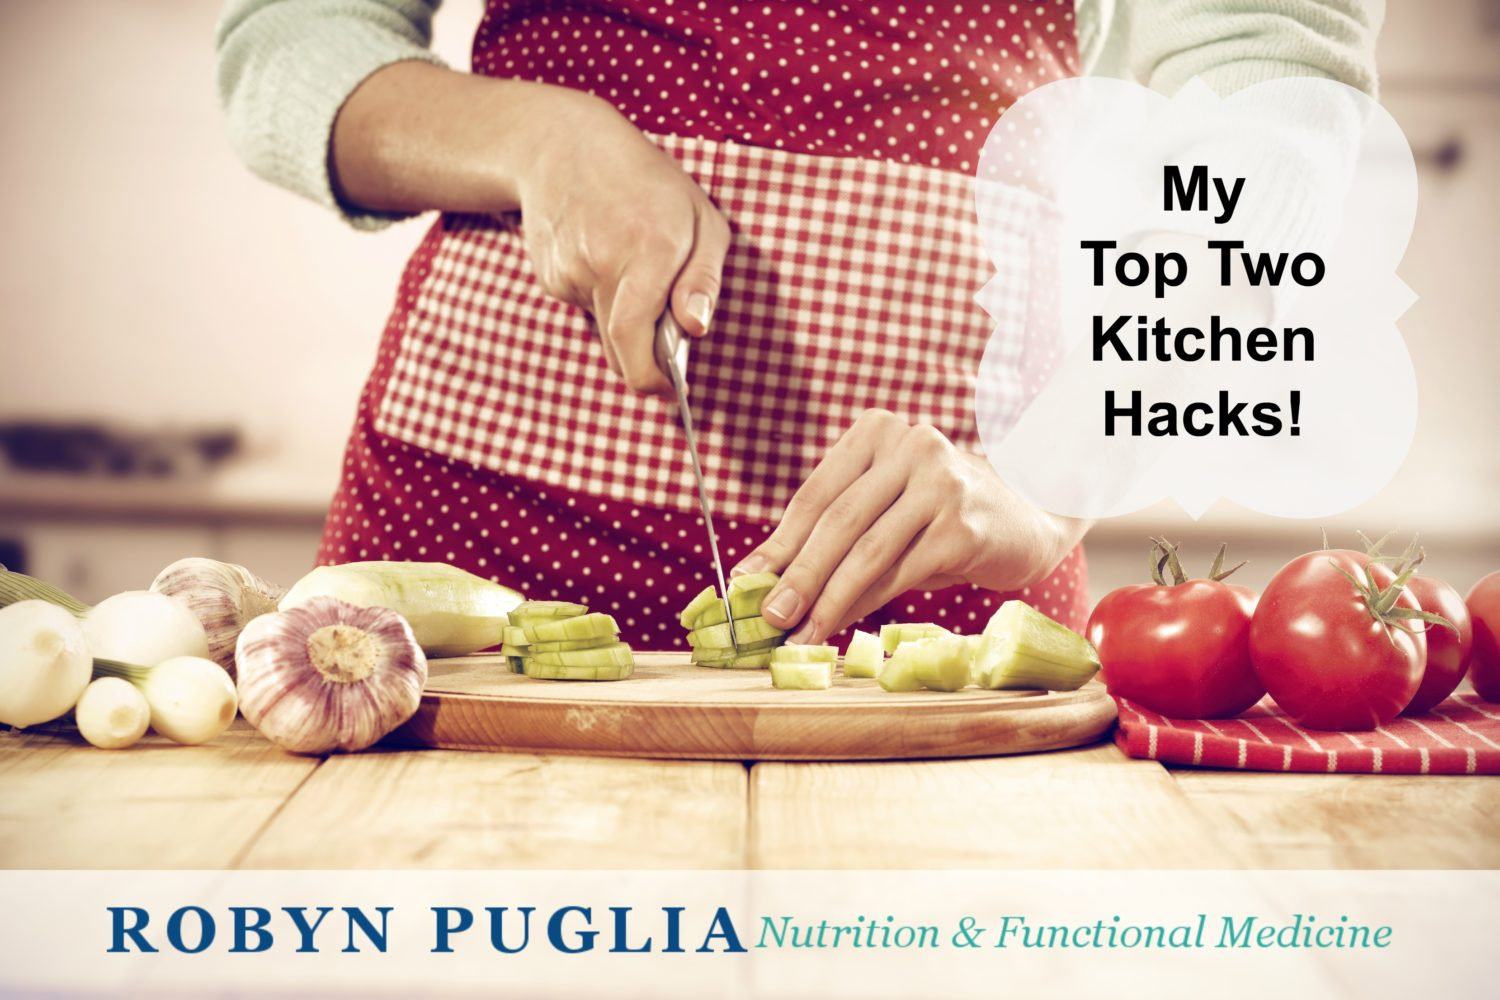 My Top 2 Kitchen Hacks